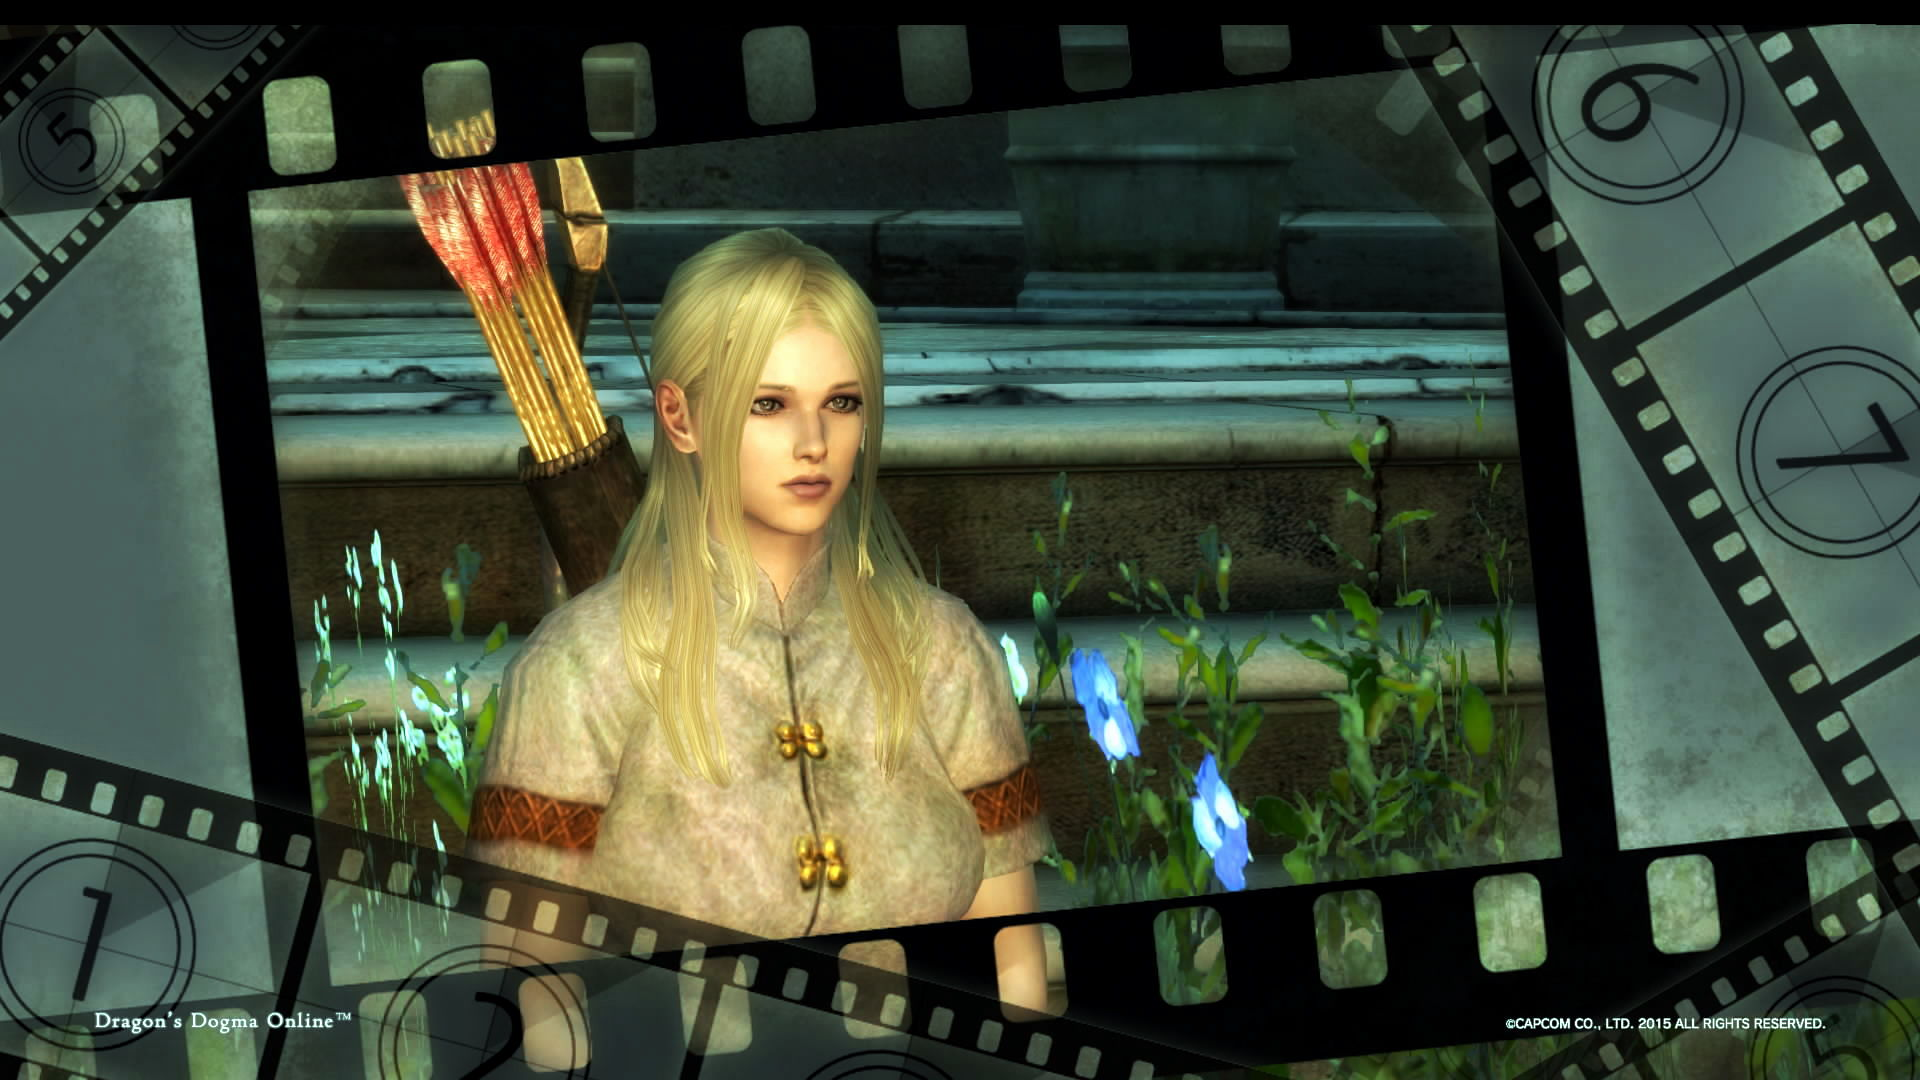 Dragons Dogma Online__16A